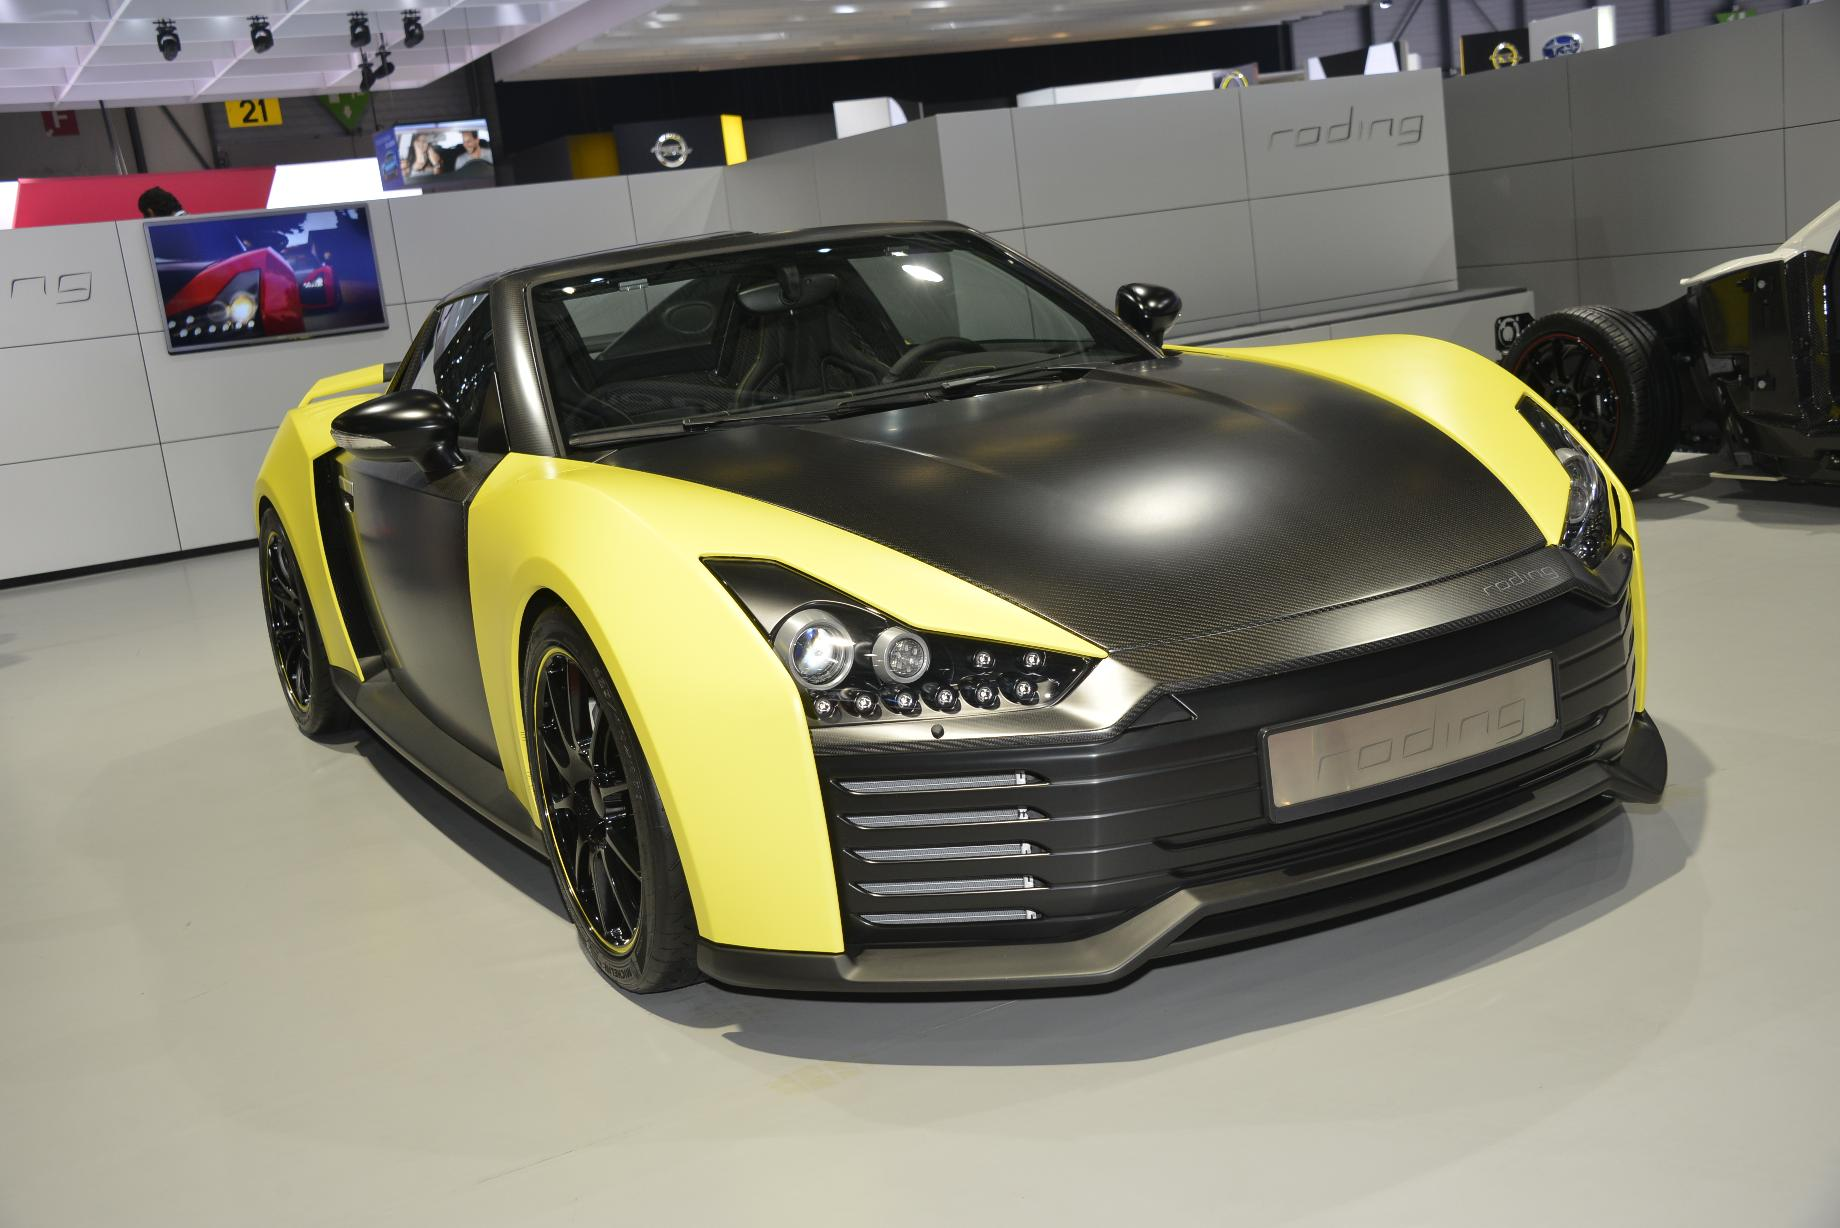 http://www.autoblog.gr/wp-content/gallery/roding-live-in-geneva-2013/roding-live-in-geneva-2013-1.jpg